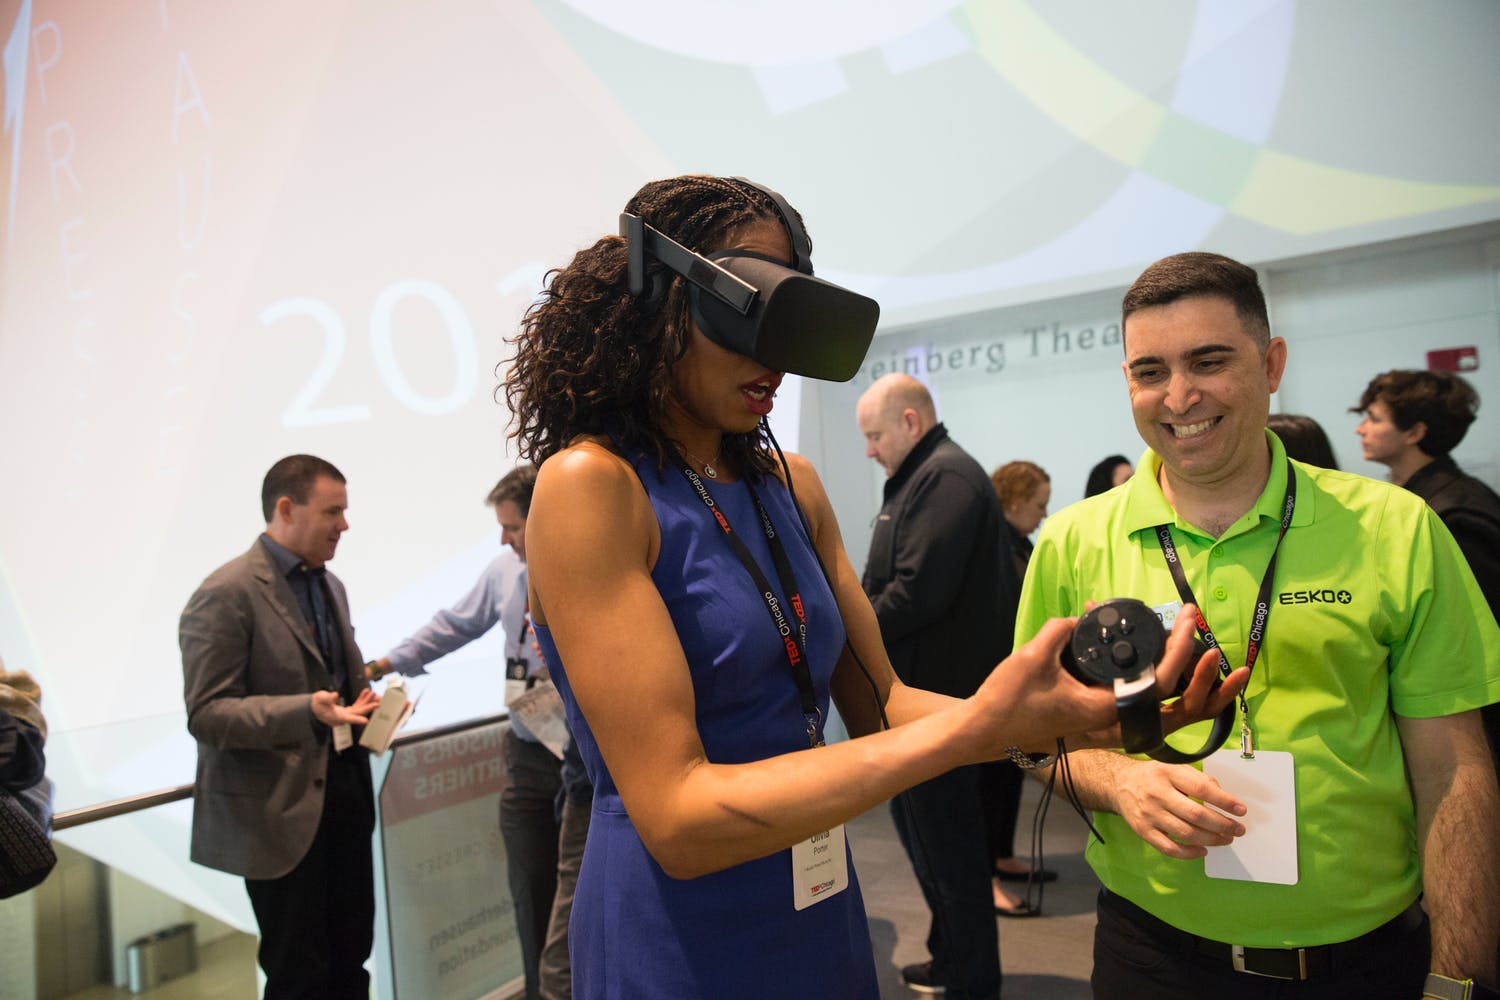 Guest tries on virtual reality headset at TEDxChicago 2019 | PartySlate